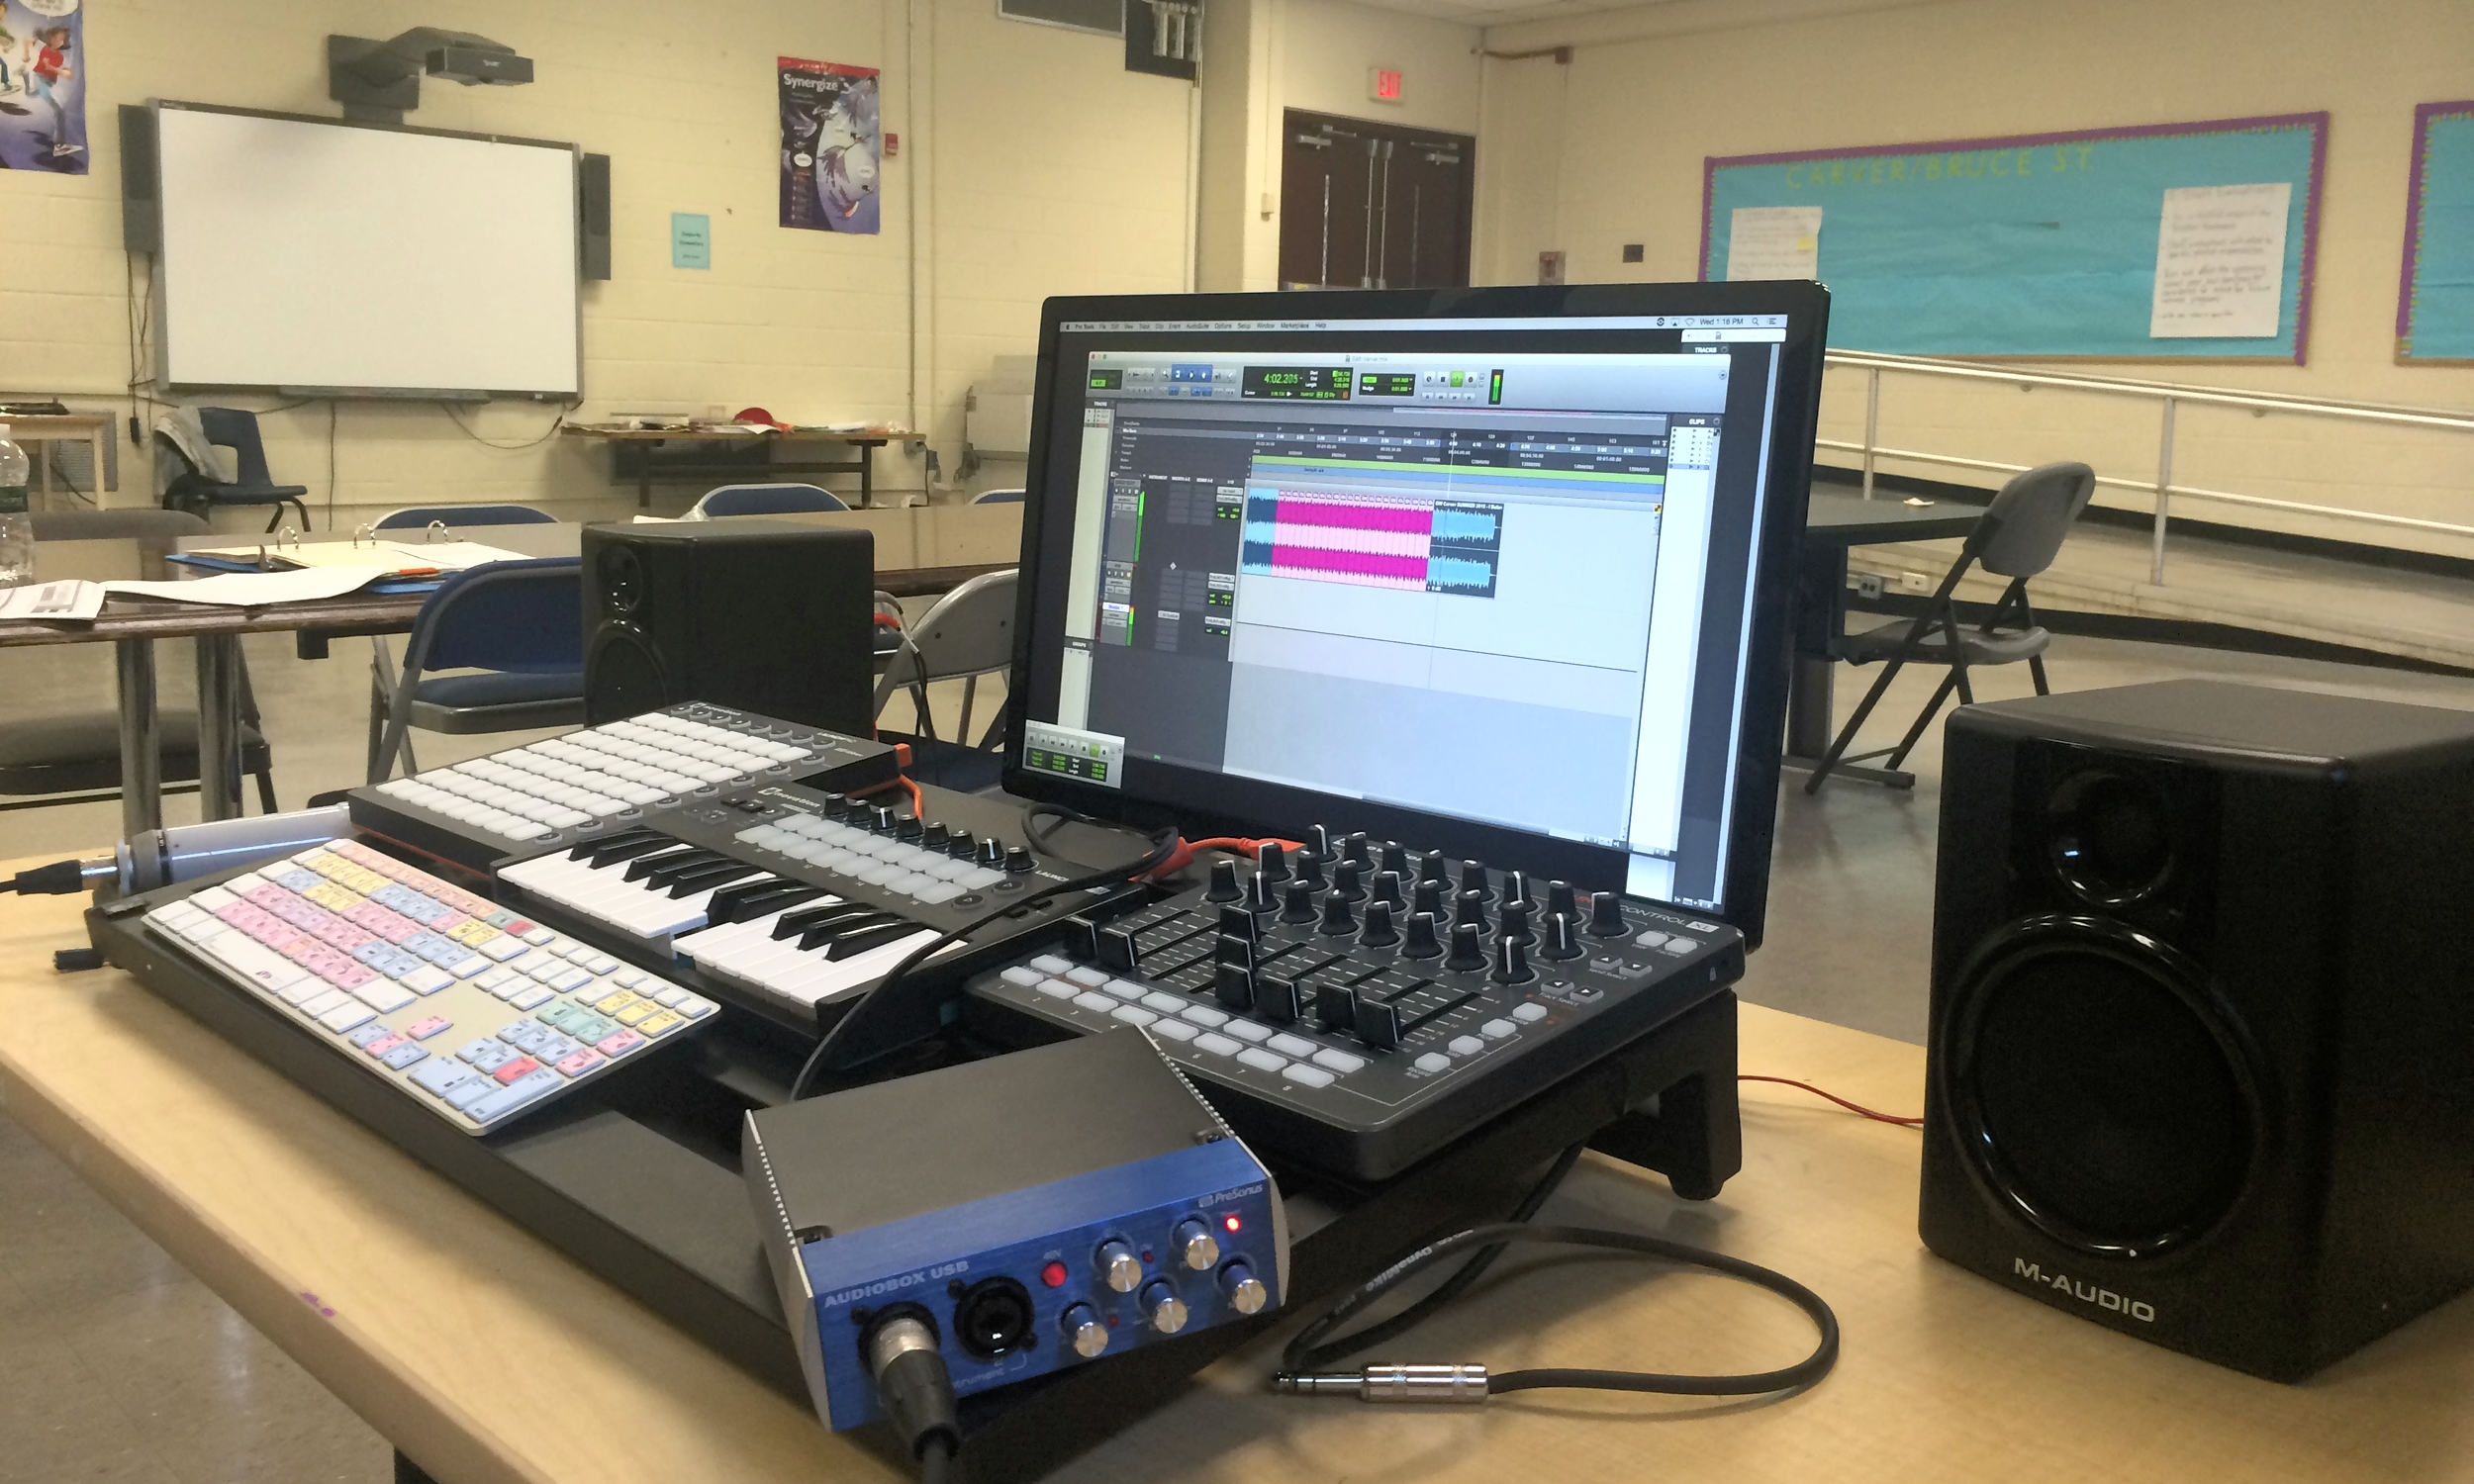 Our mobile Digital Audio Workstation will transform your classroom into a recording studio.